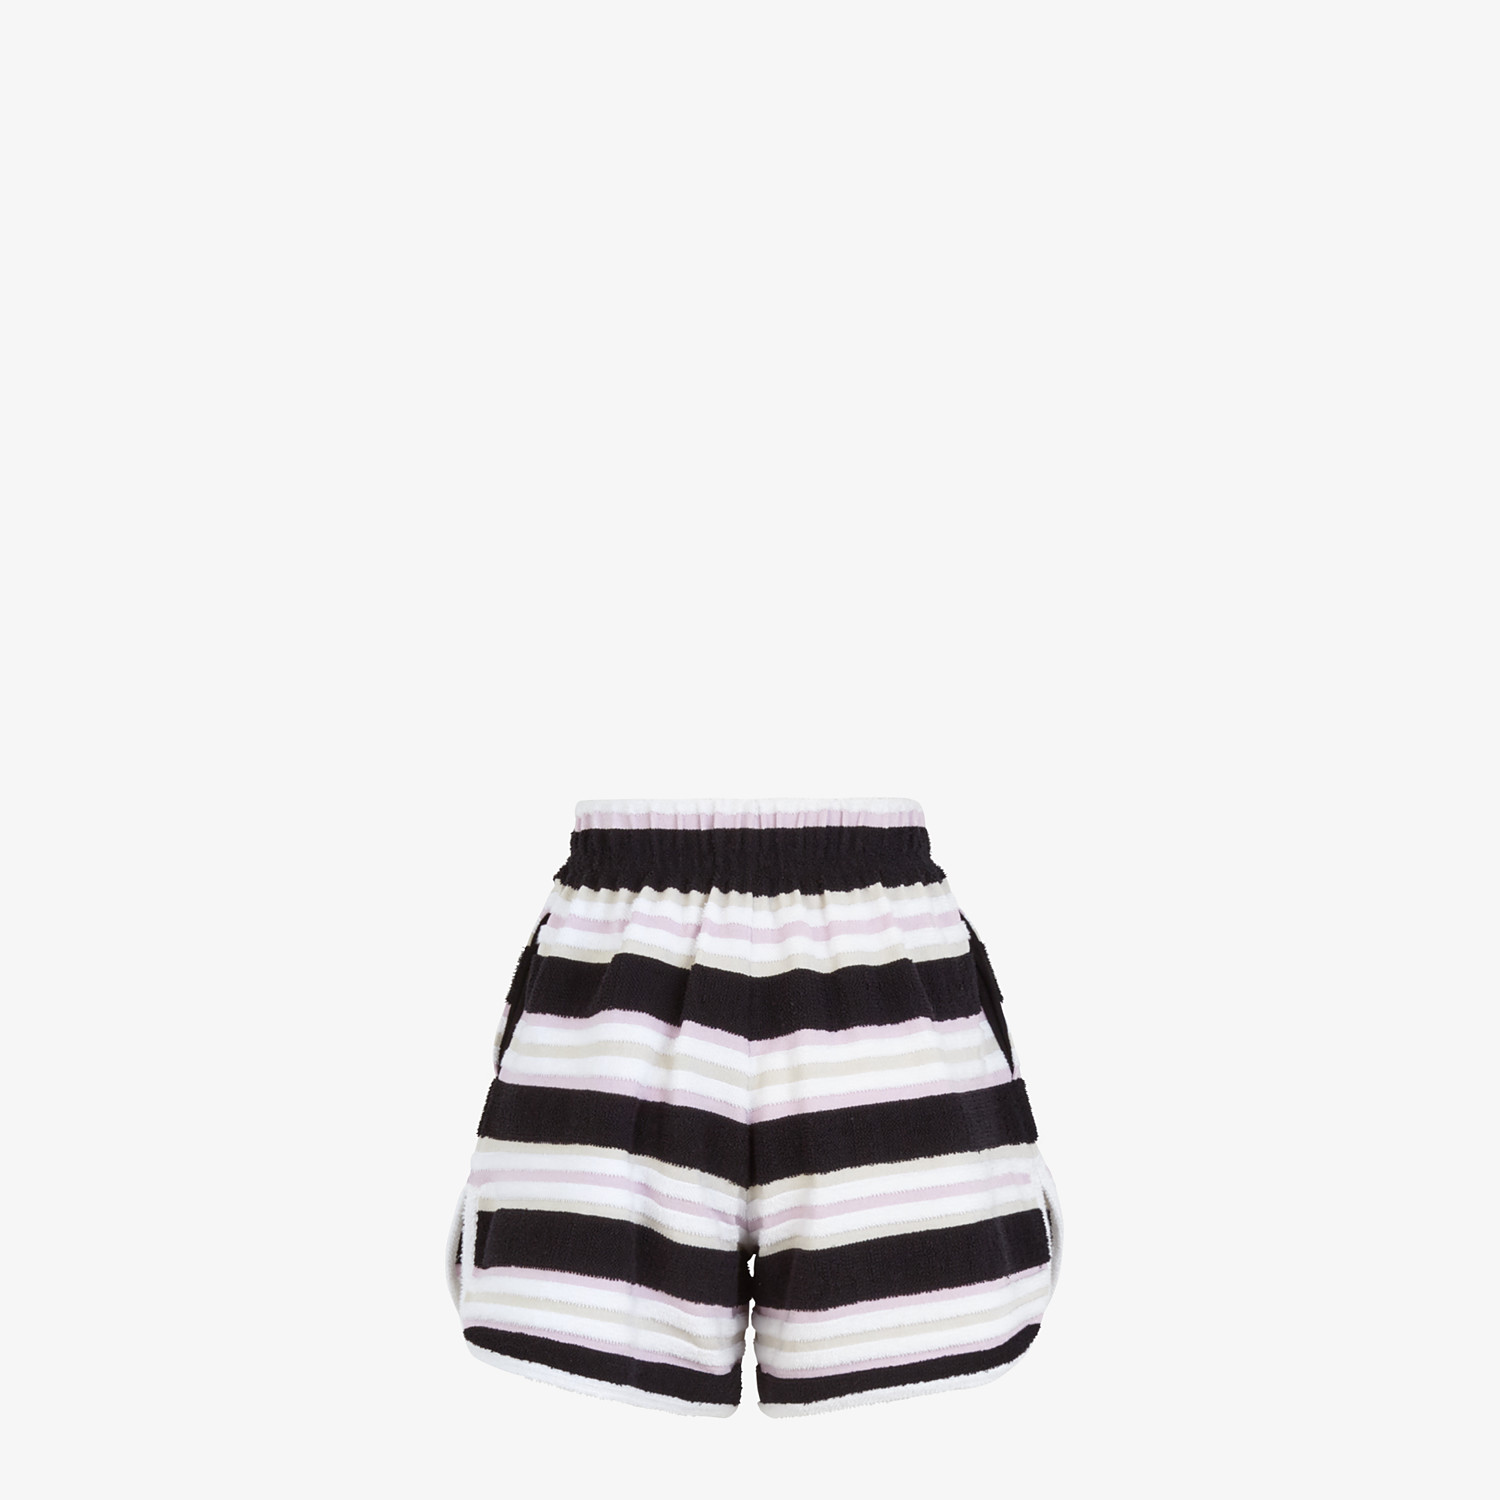 FENDI SHORTS - Multicolour cotton shorts - view 2 detail